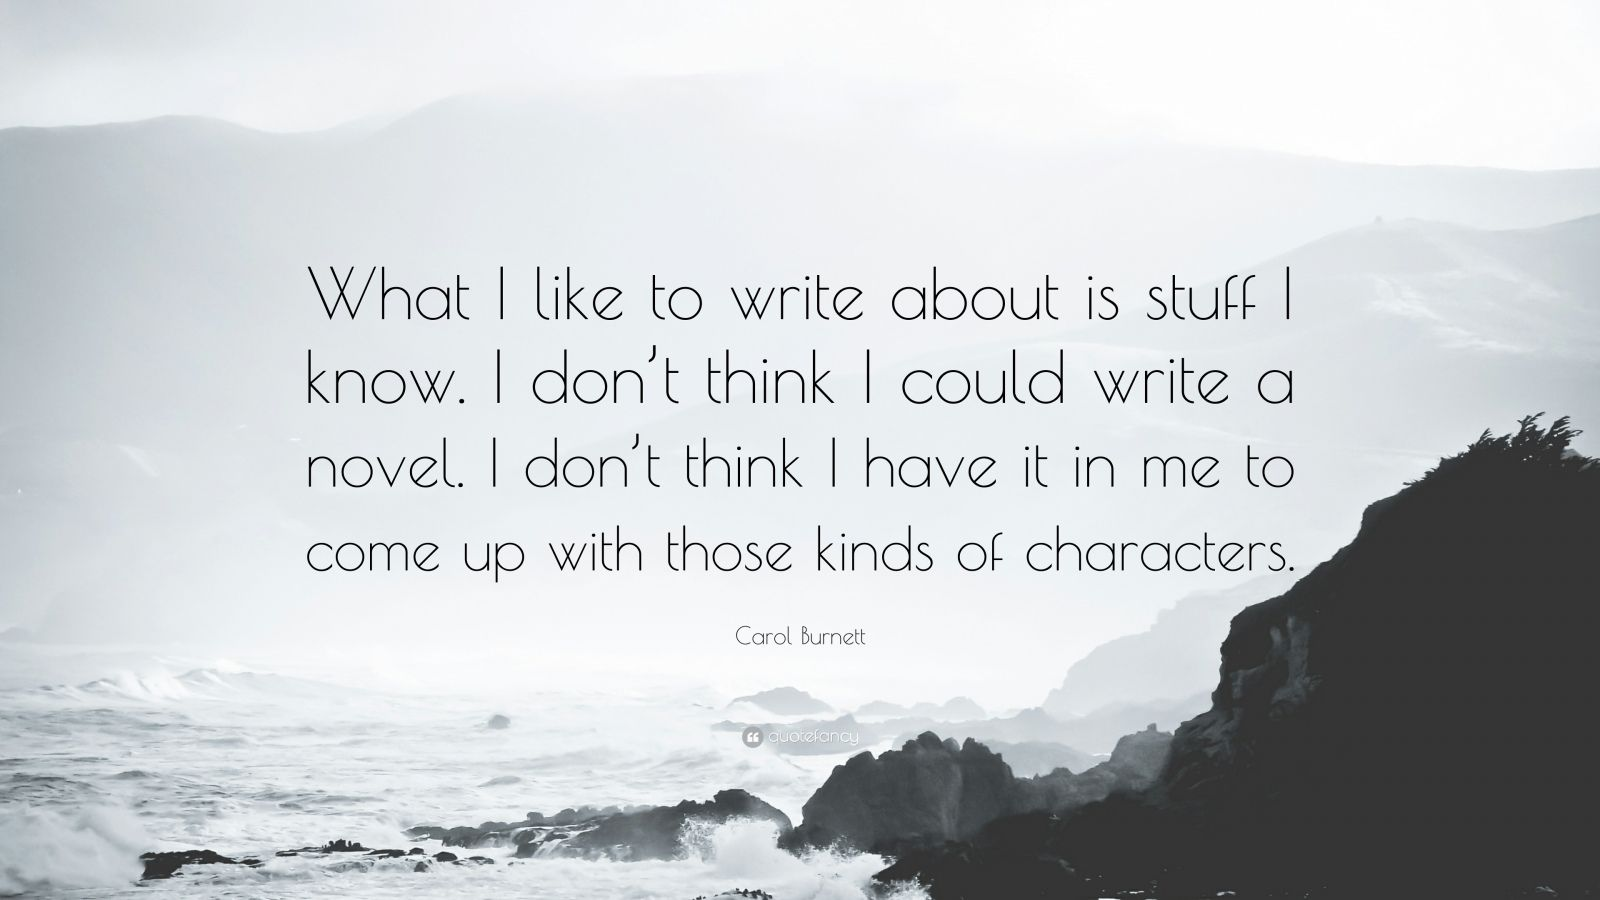 """Carol Burnett Quote: """"What I like to write about is stuff I know. I don't think I could write a novel. I don't think I have it in me to come up with those kinds of characters."""""""